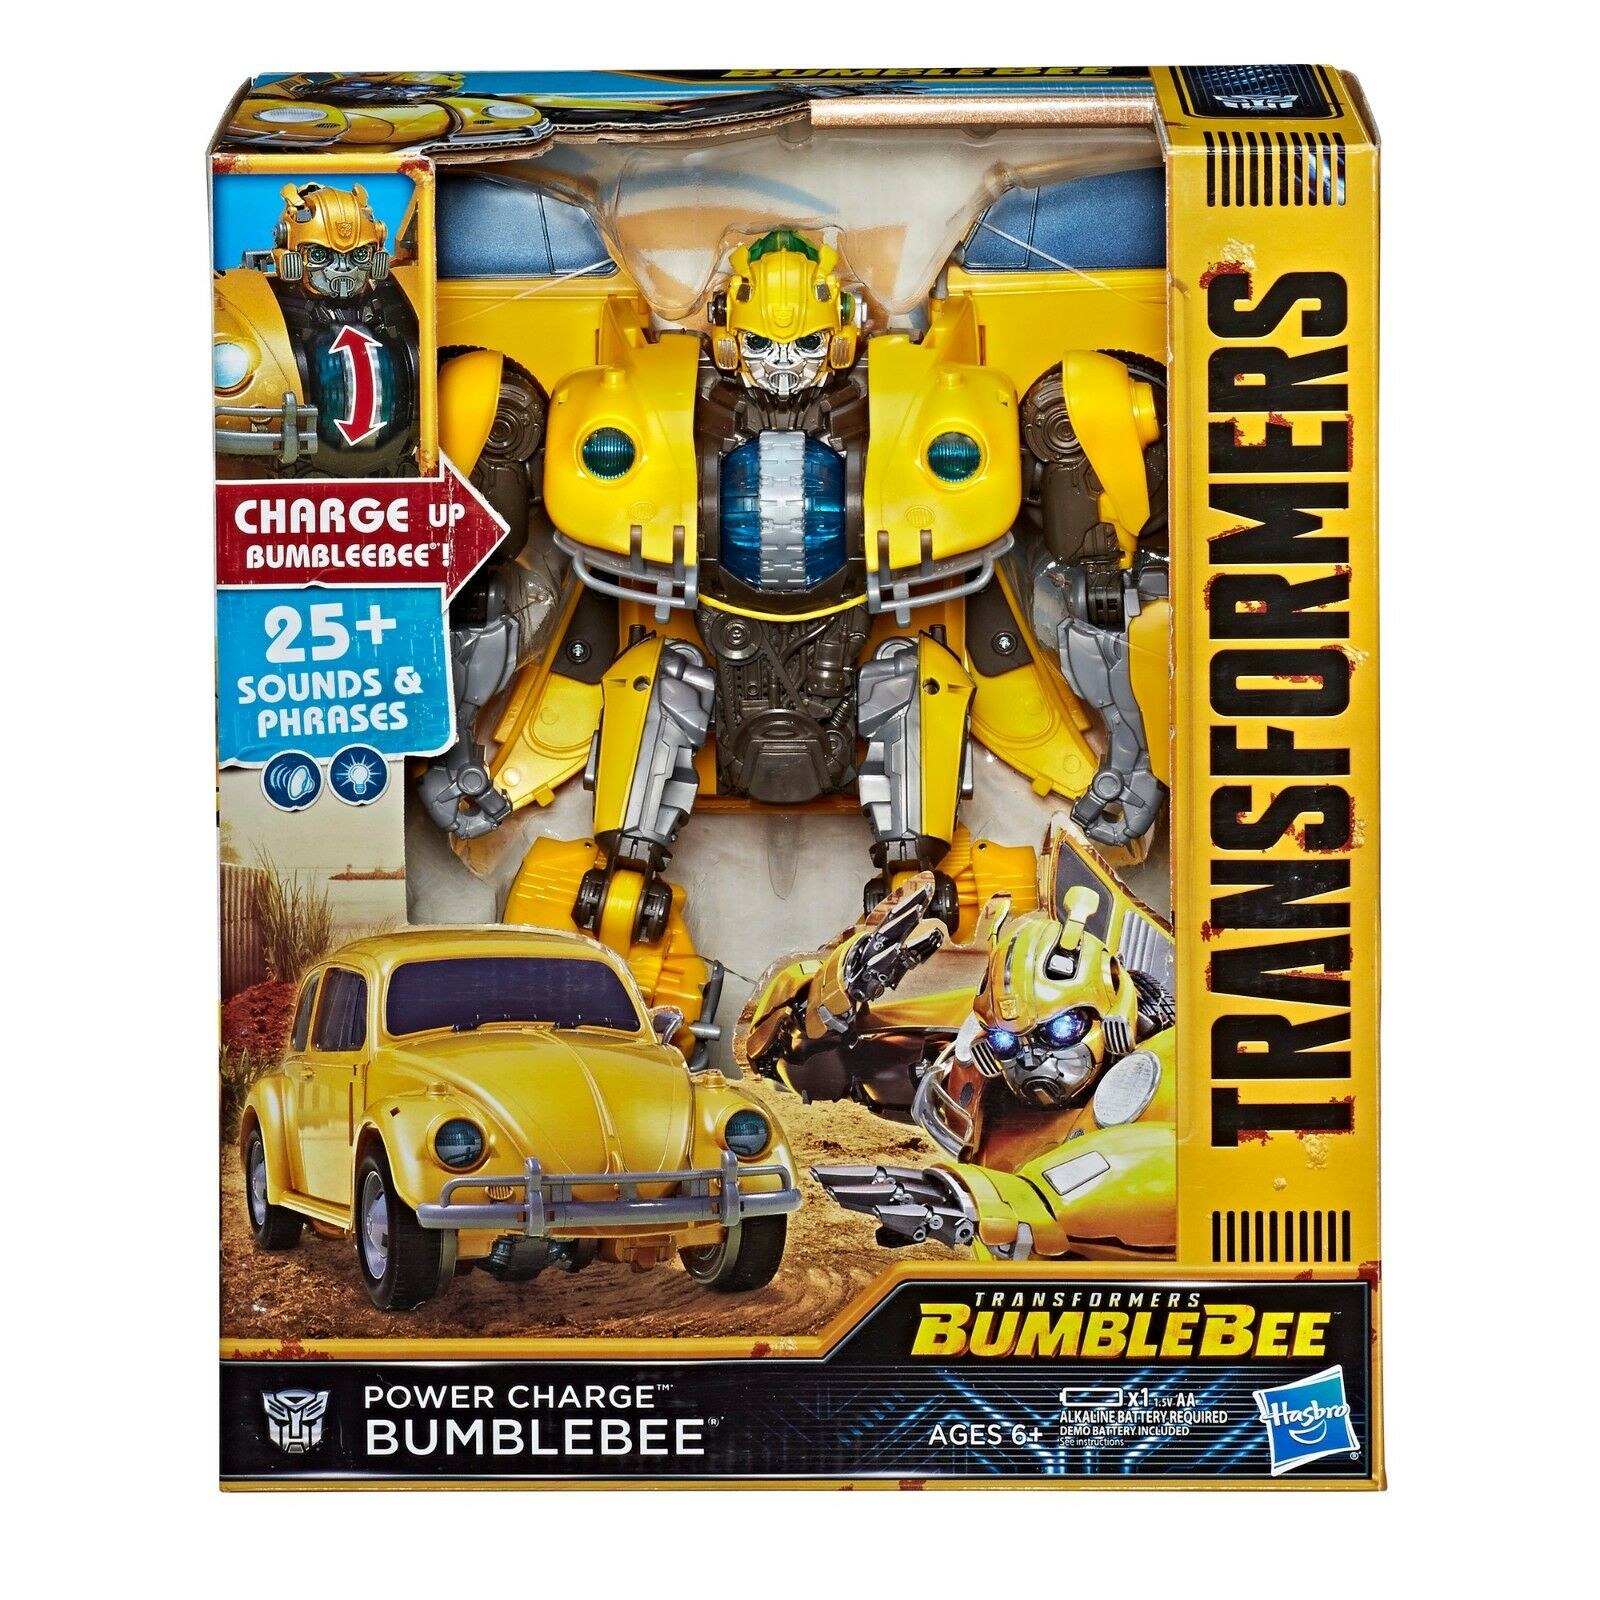 Transformers Bumblebee Movie Power Charge Bumblebee ELECTRONIC LIGHT SOUND 2018